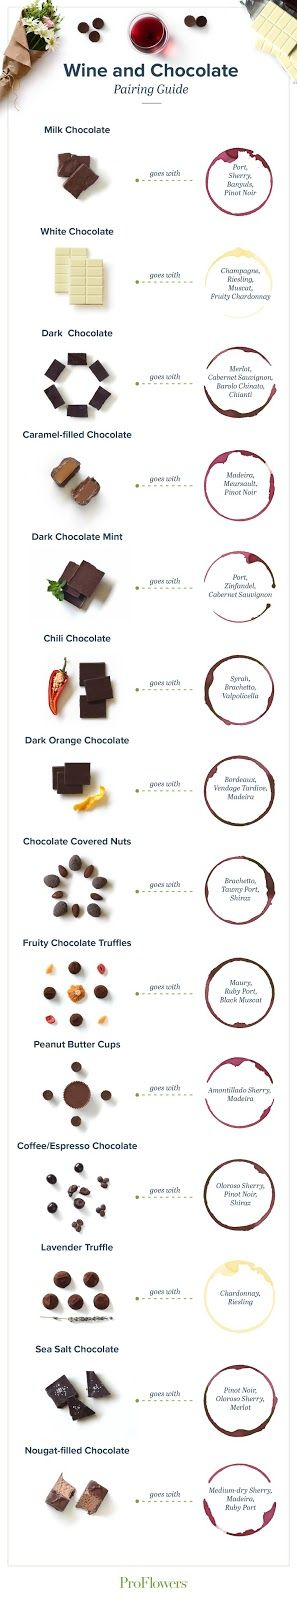 I came across this fabulous guide to wine and chocolate pairing from ProFlowers . It pairs 14 popular chocolates like peanut butter cups ...